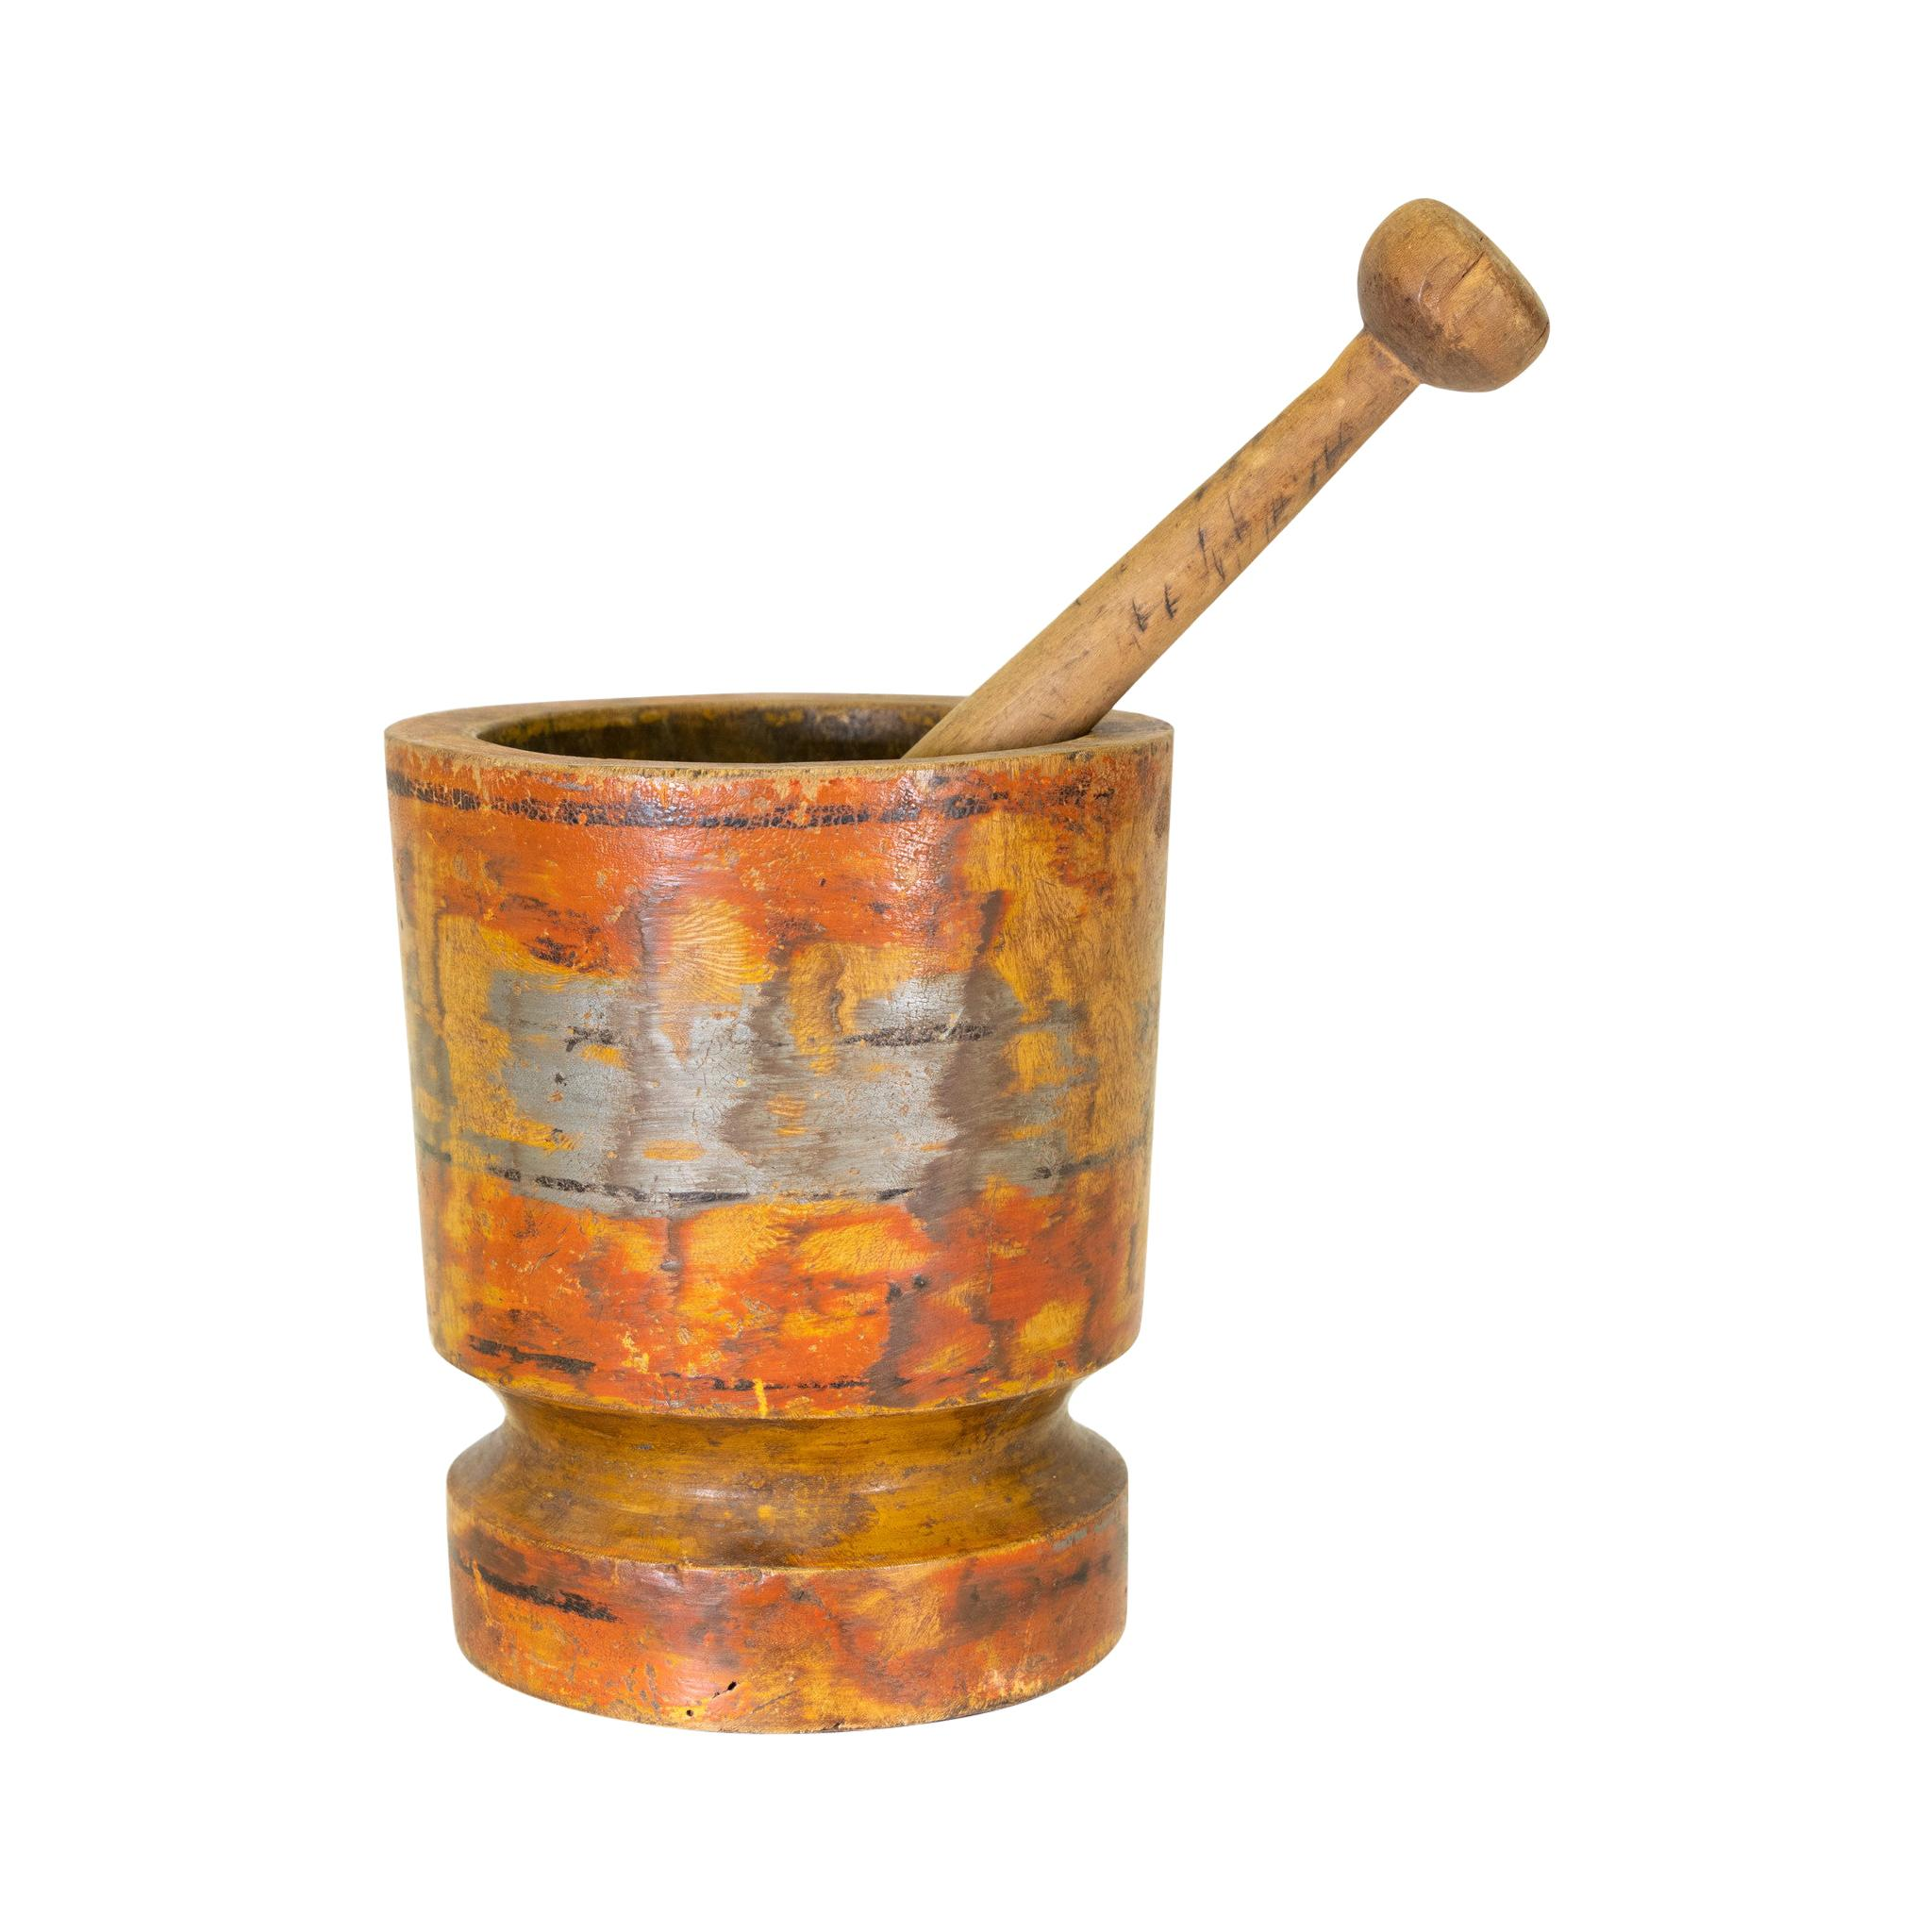 19th Century Mortar and Pestle